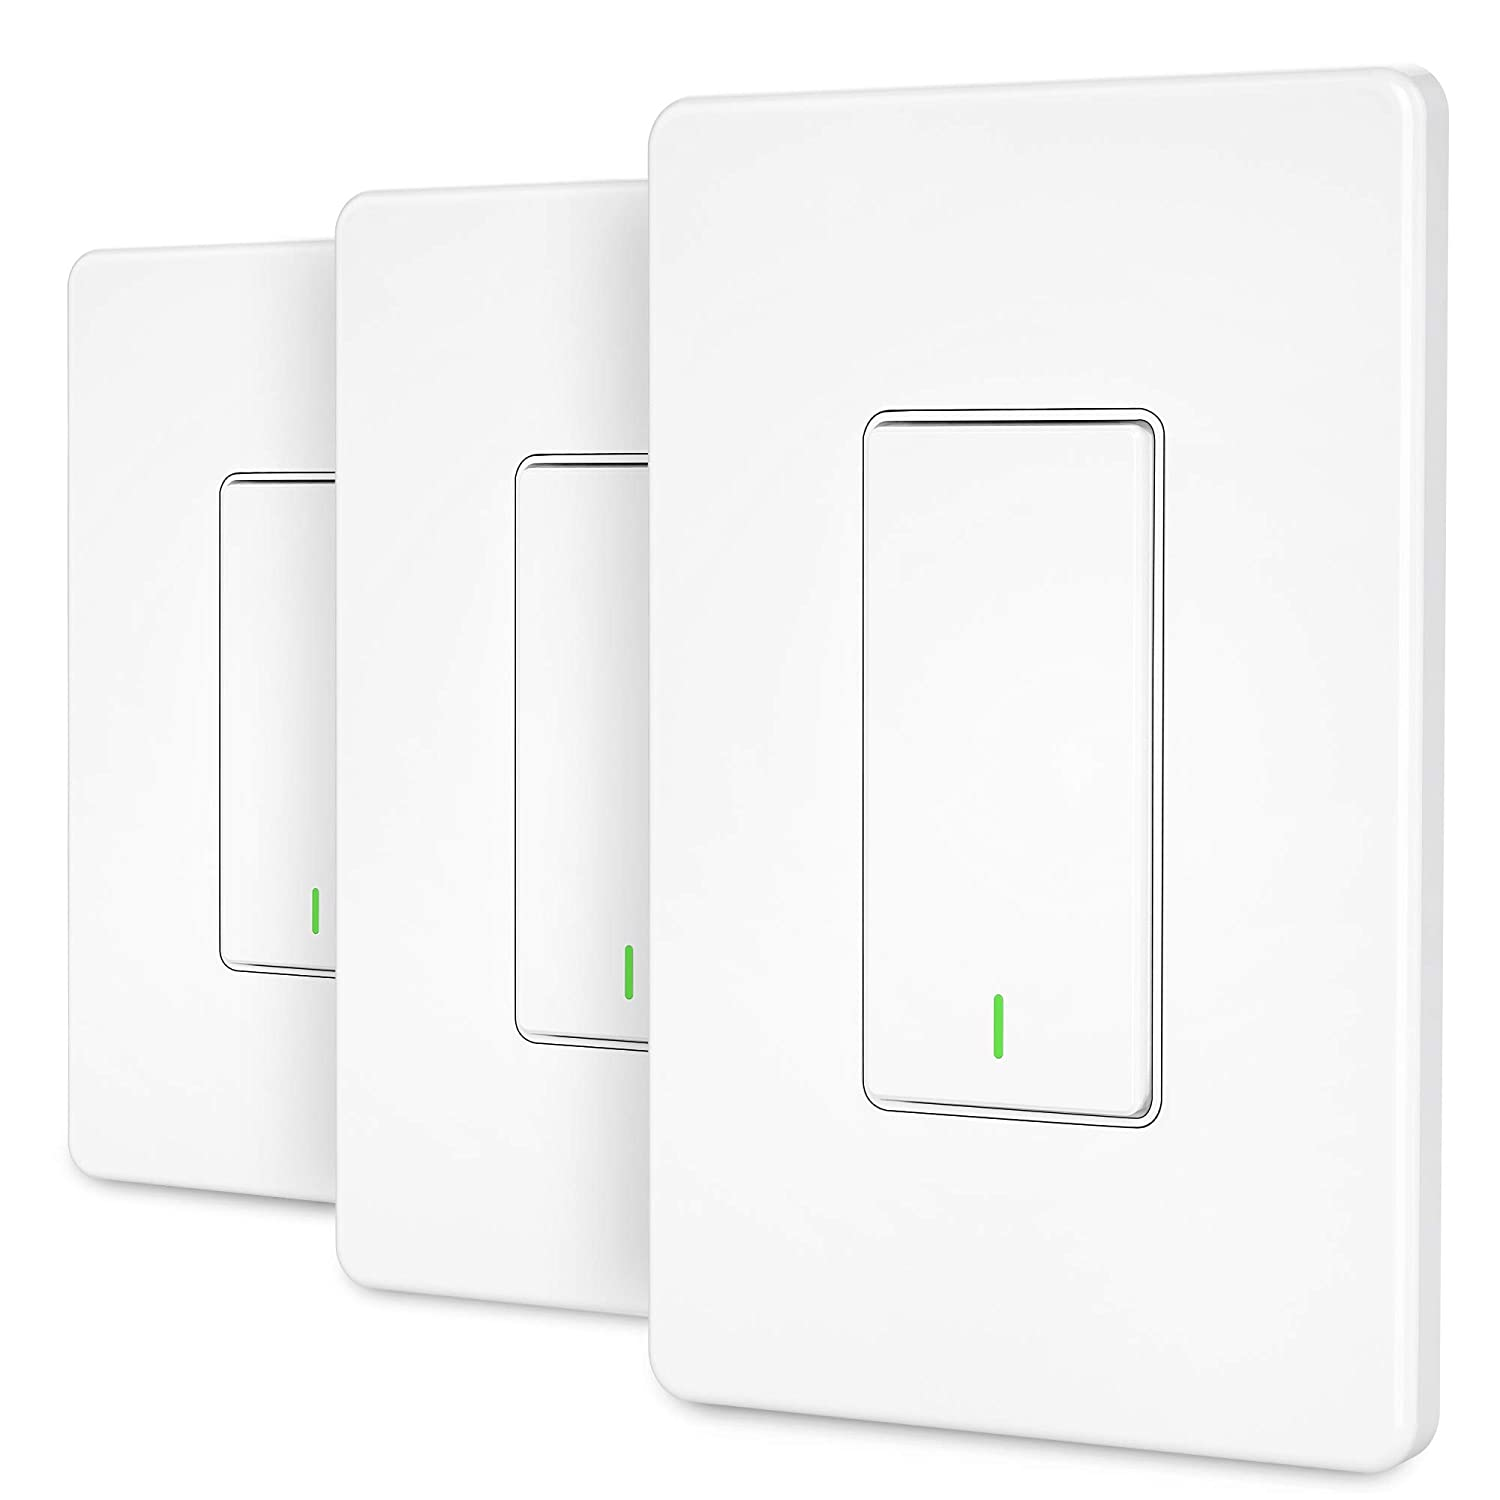 Smart Switch [3 Pack] GRDE WiFi Smart Light Switch Works with Alexa and Google Assistant, Remote Control, Easy In-Wall Installation, Single Pole Neutral Wire Required, Light Switch with Schedule Timer